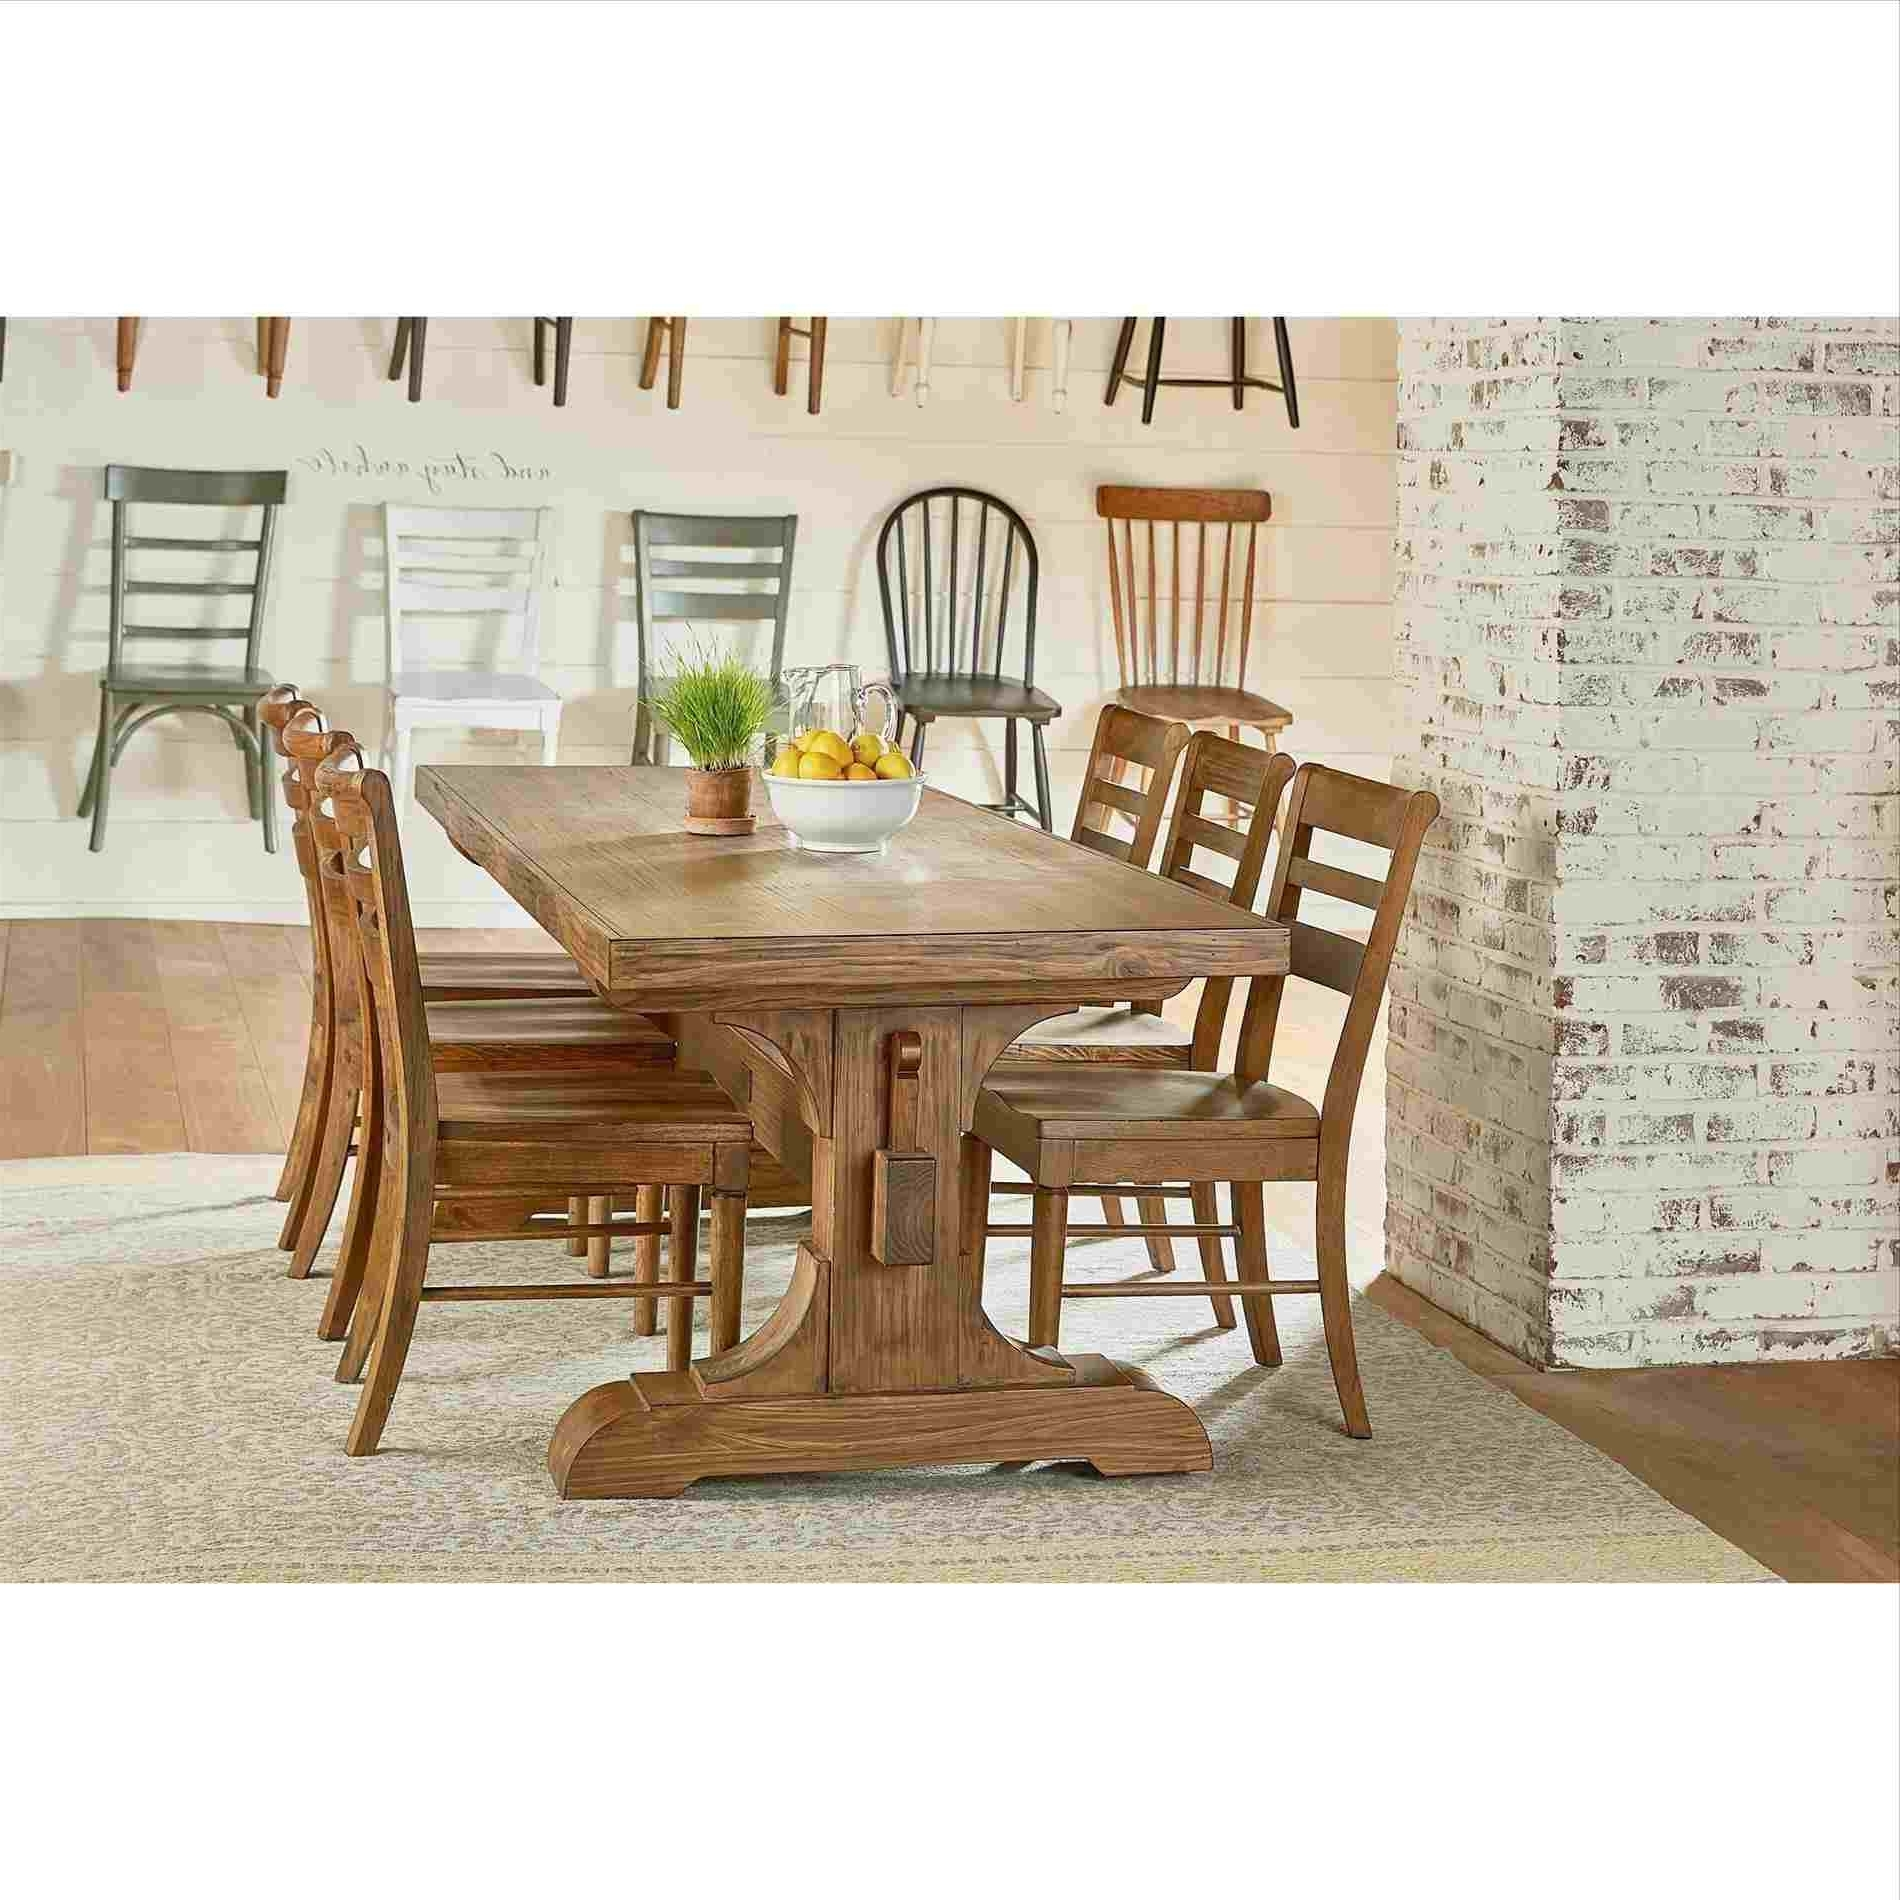 Preferred Joanna Gaines Farmhouse Dining Table (View 21 of 25)